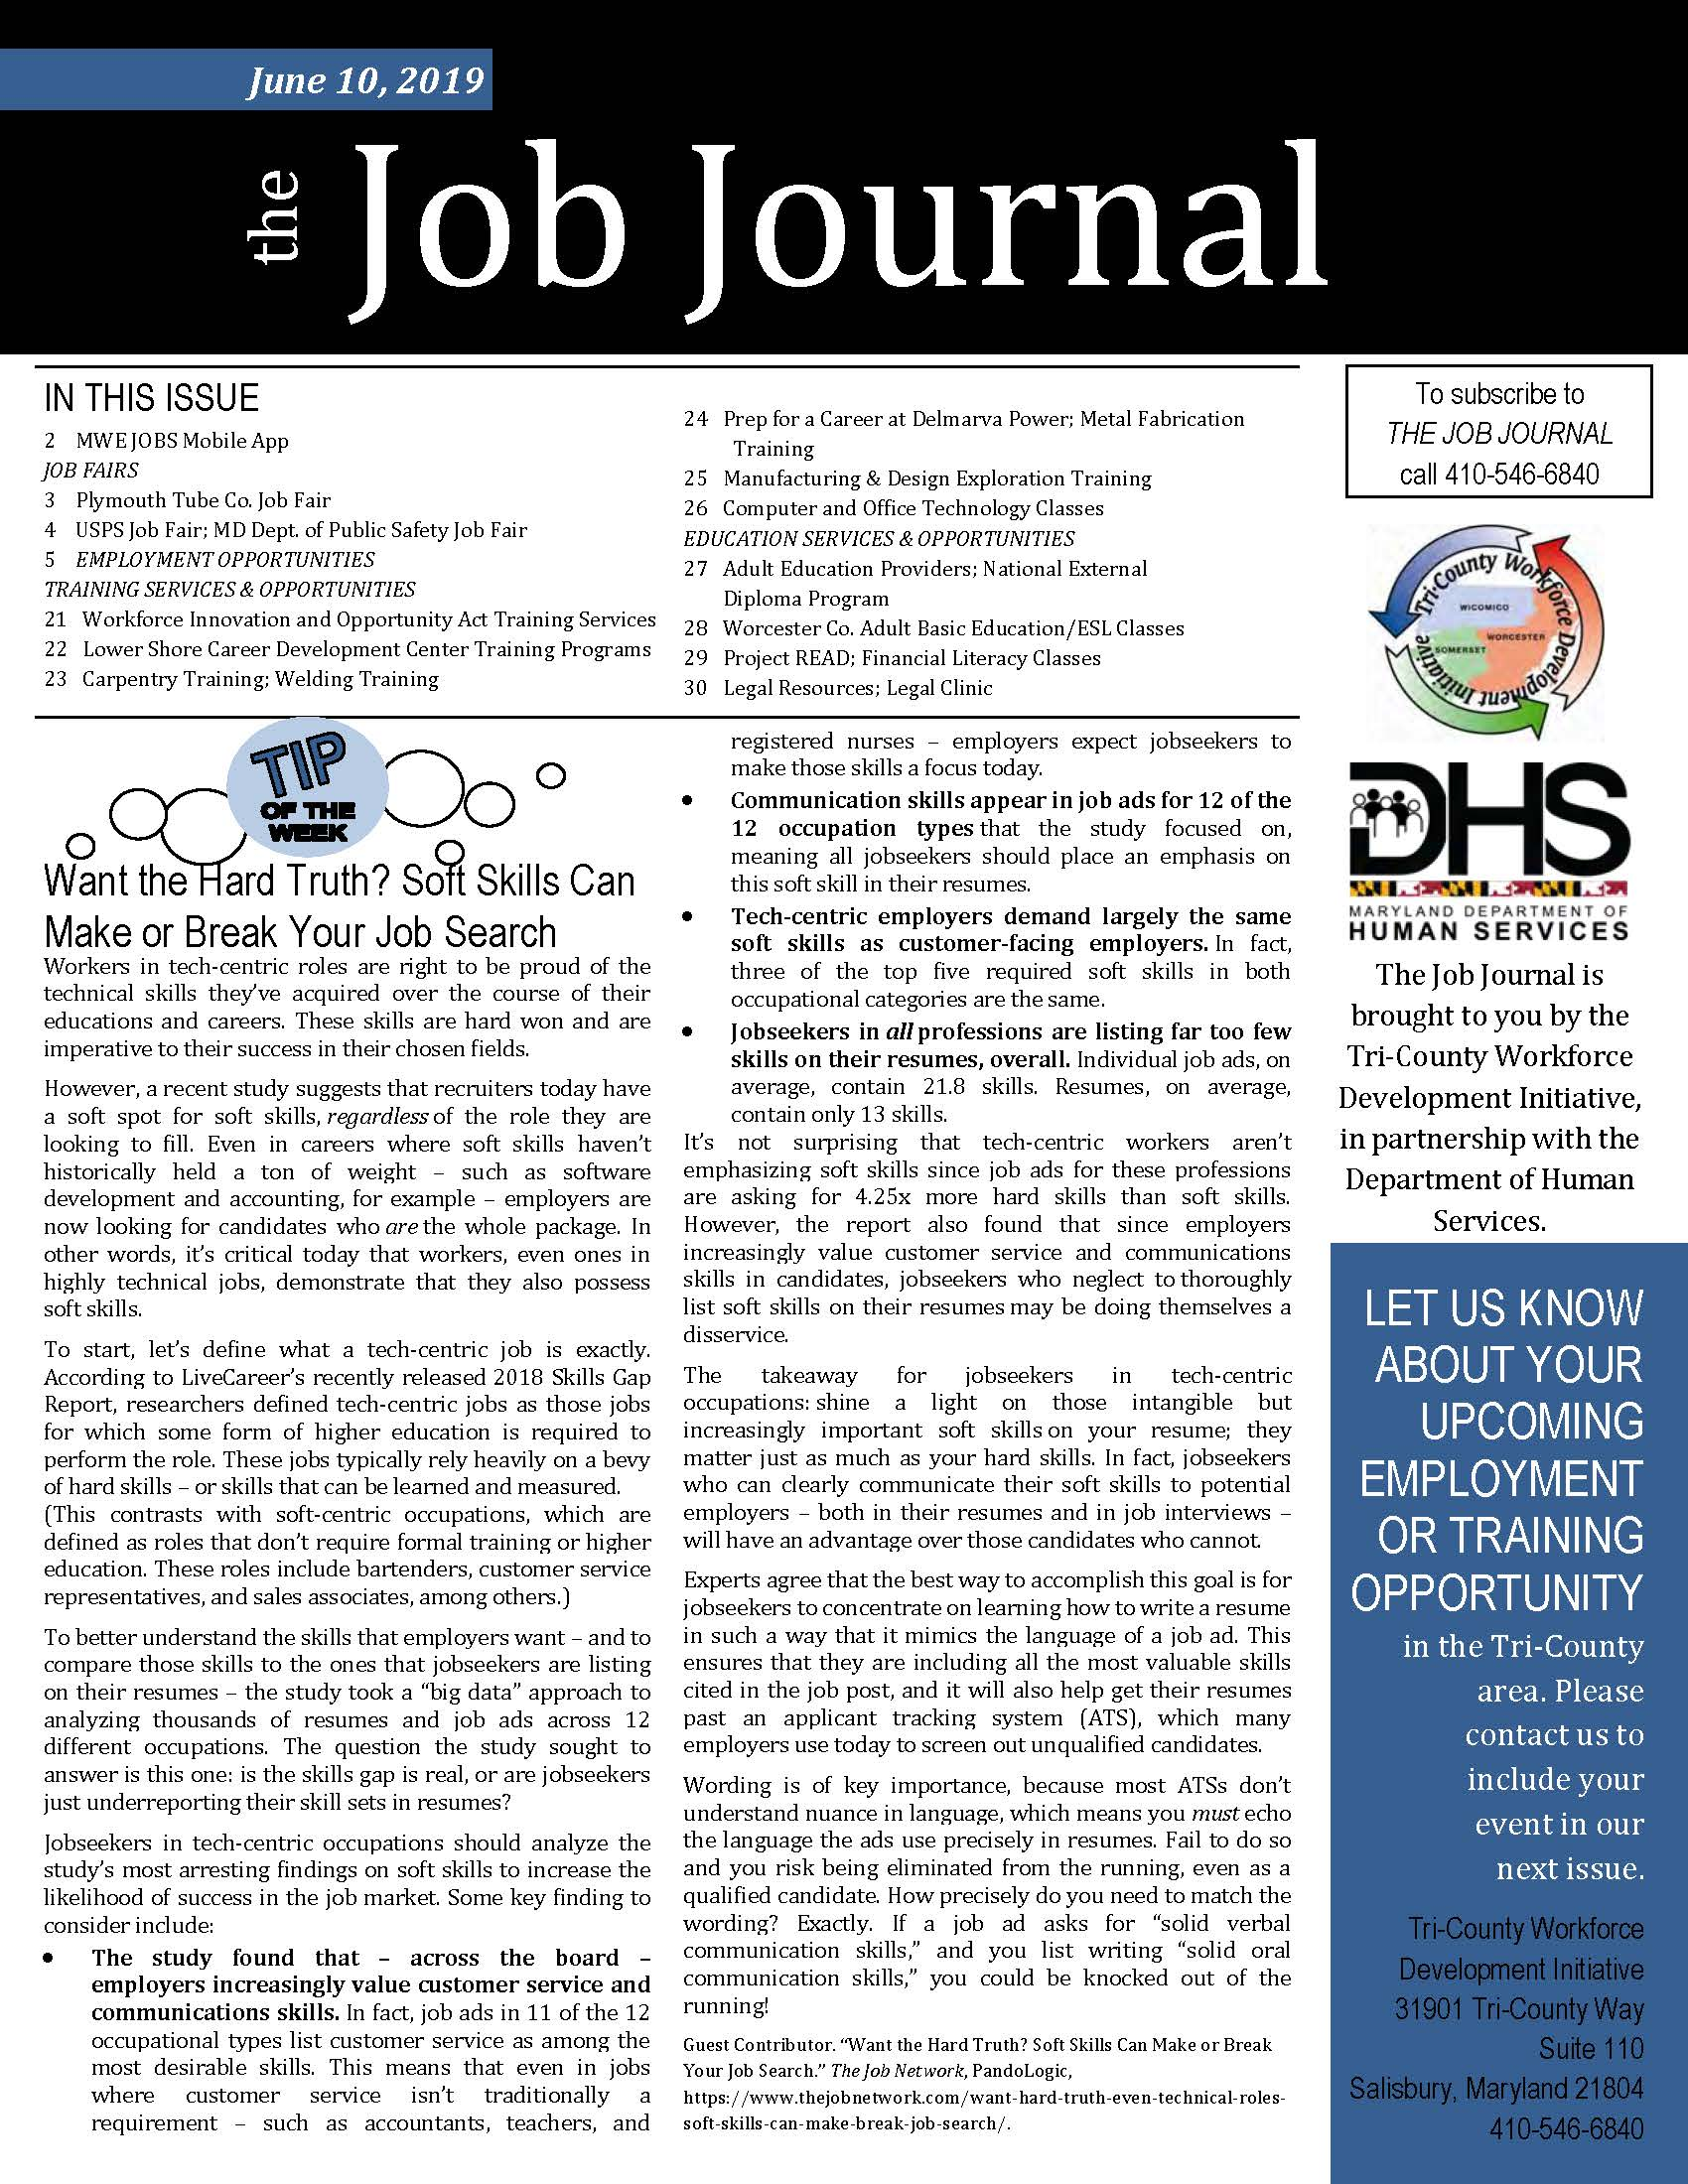 Front cover of The Job Journal 06.10.2019